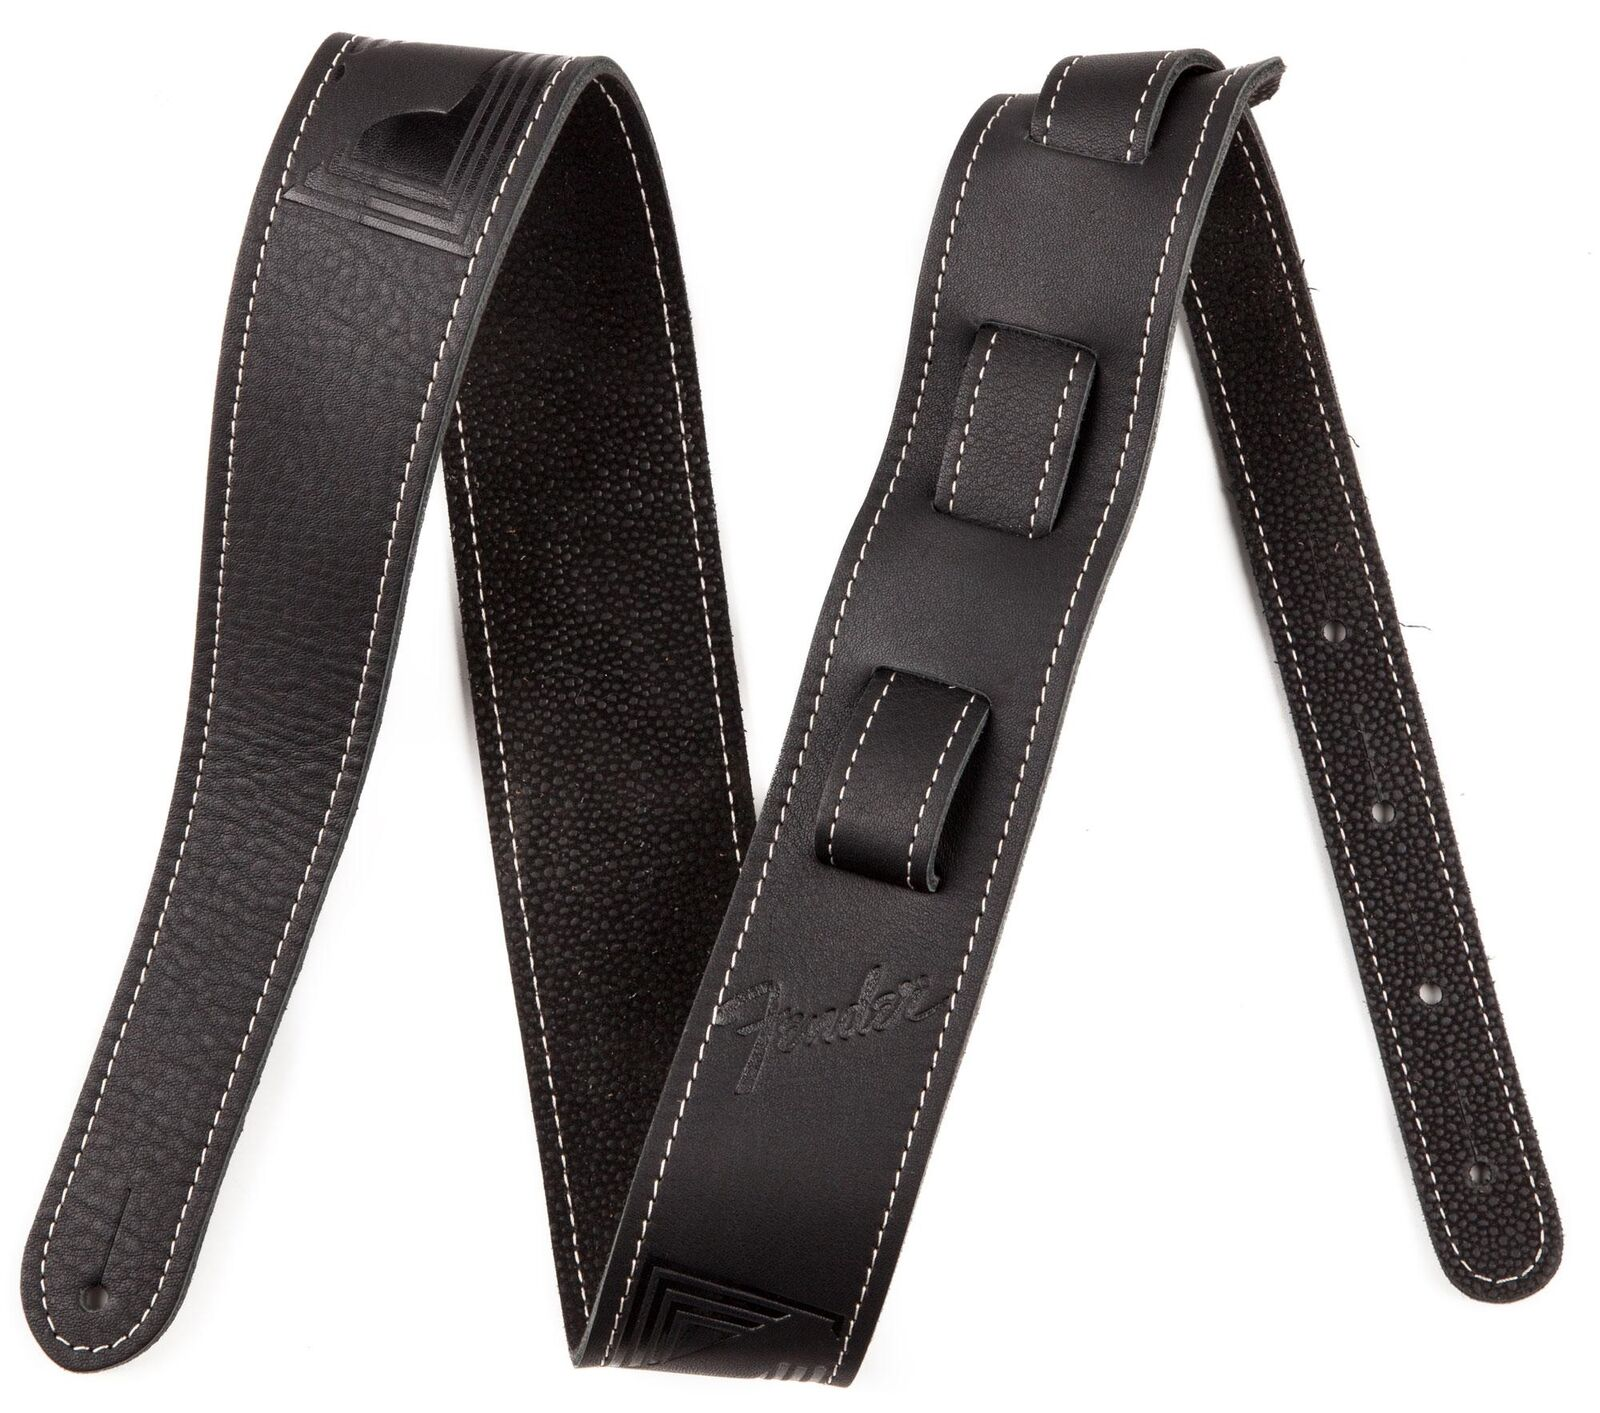 FENDER GUITAR STRAP MONOGRAM LEATHER BLK GITARREN  BASS GURT LEDER VERSTELLBAR